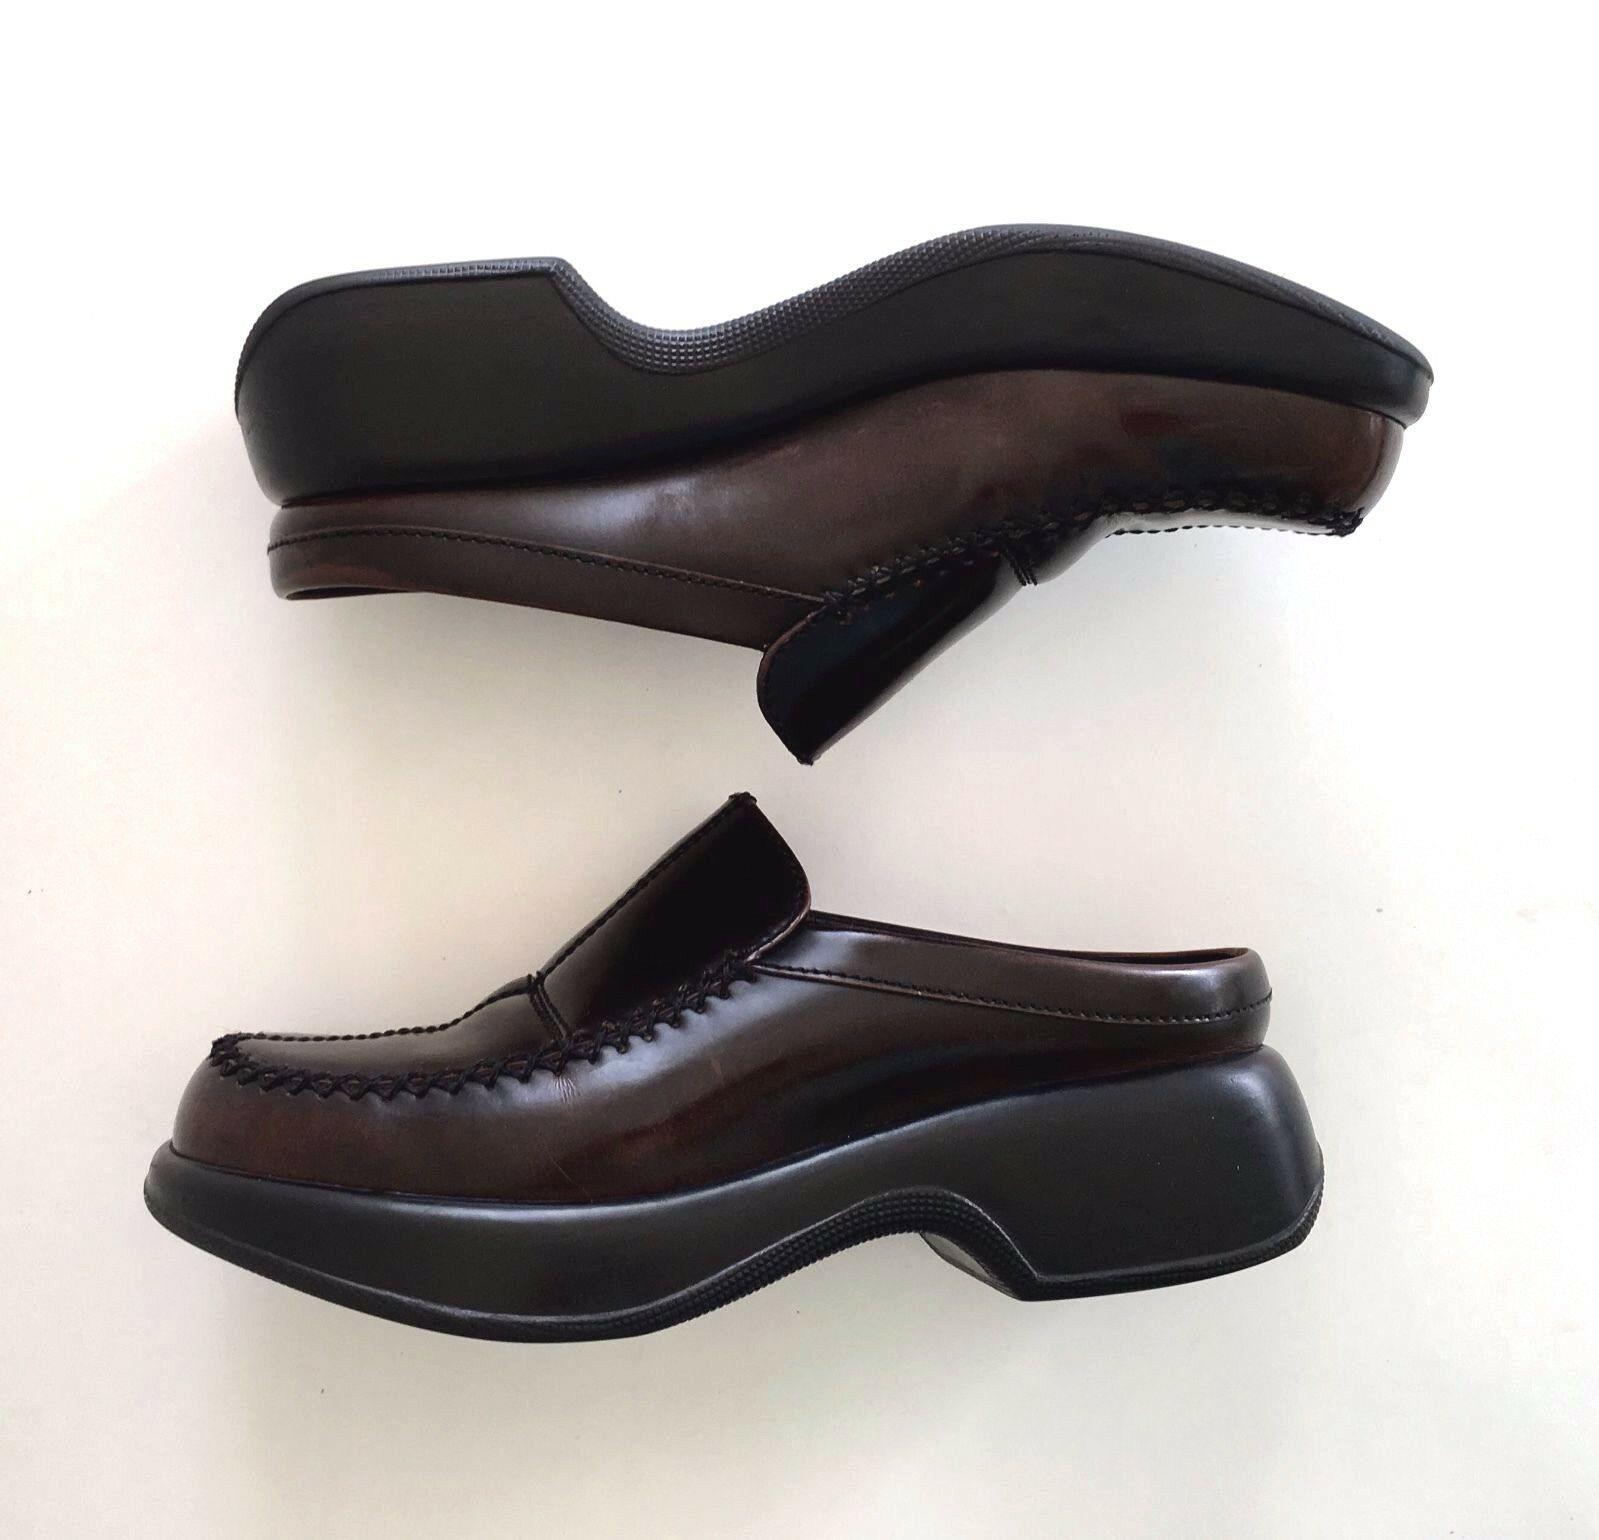 6b2af6f16cc Dansko Comfort Shoes Slip On Clog Size 5 1 2 and 50 similar items